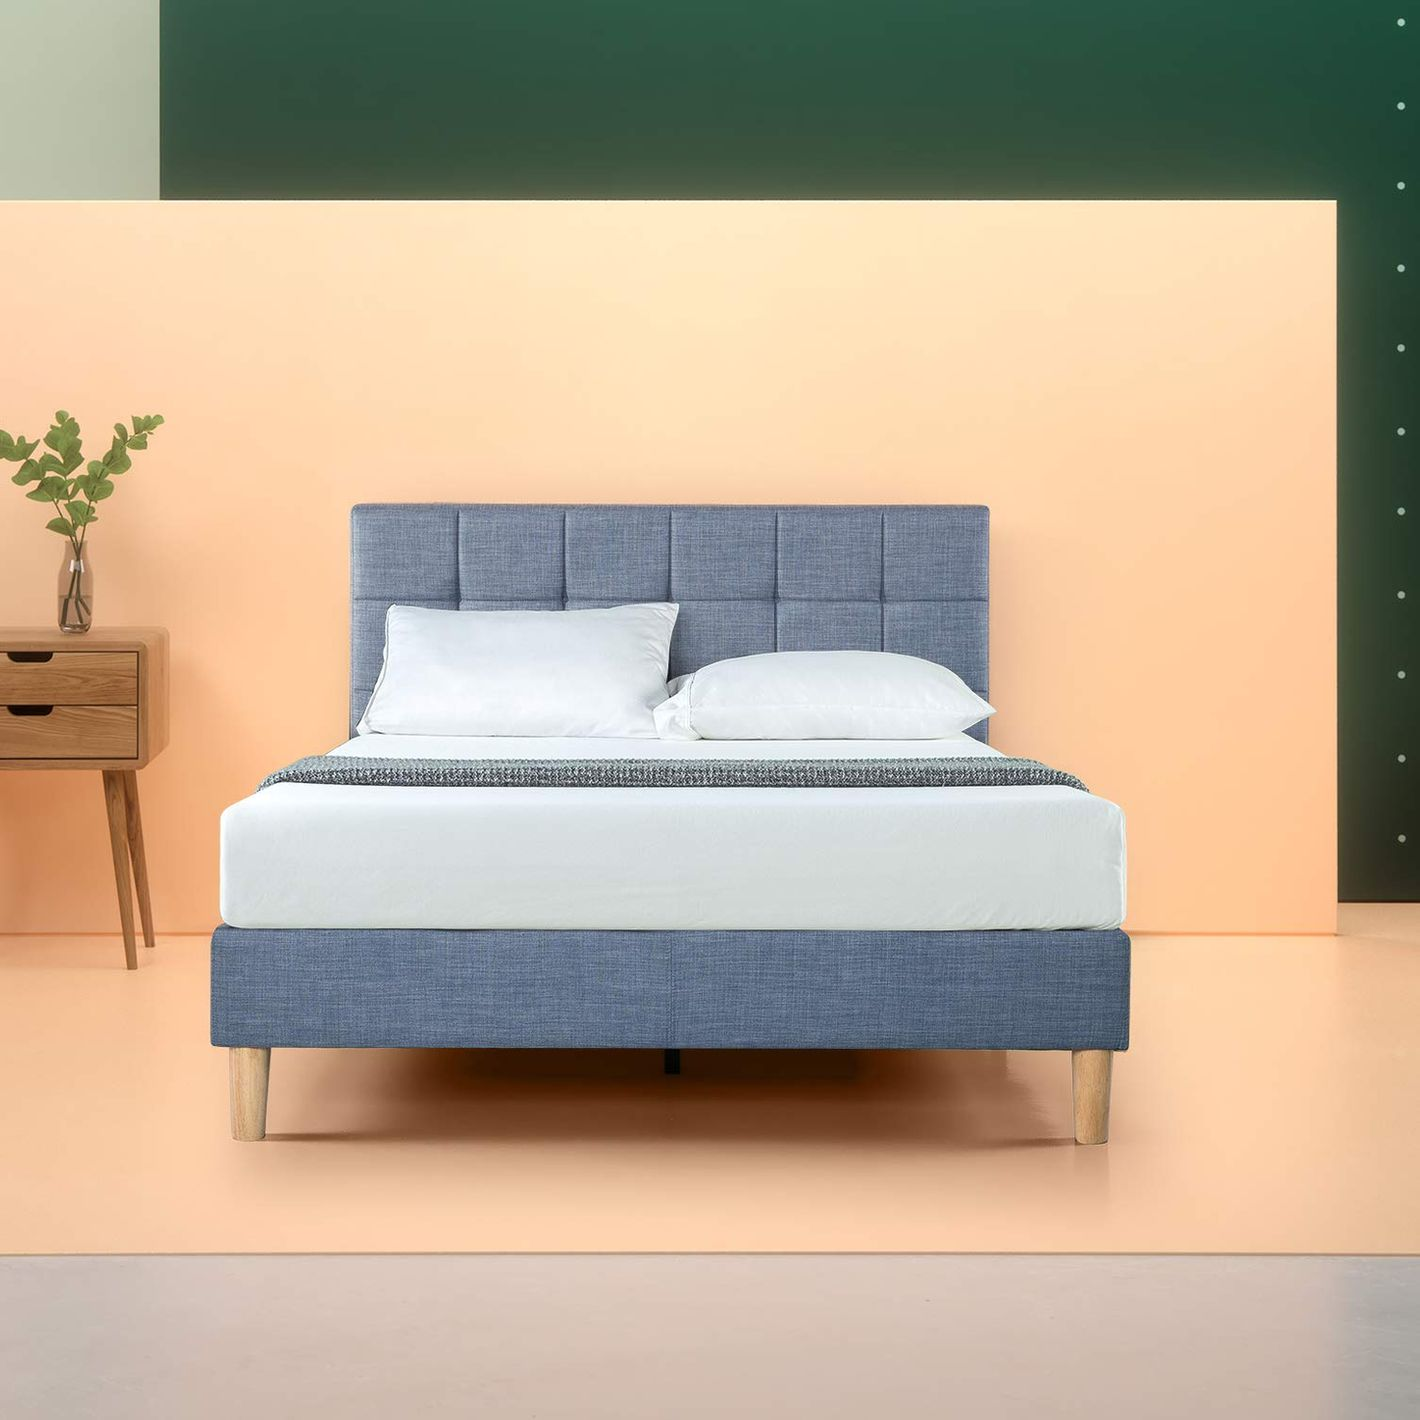 Cheap New Beds: Best Affordable Bed Frames Best Storage Bed Frames